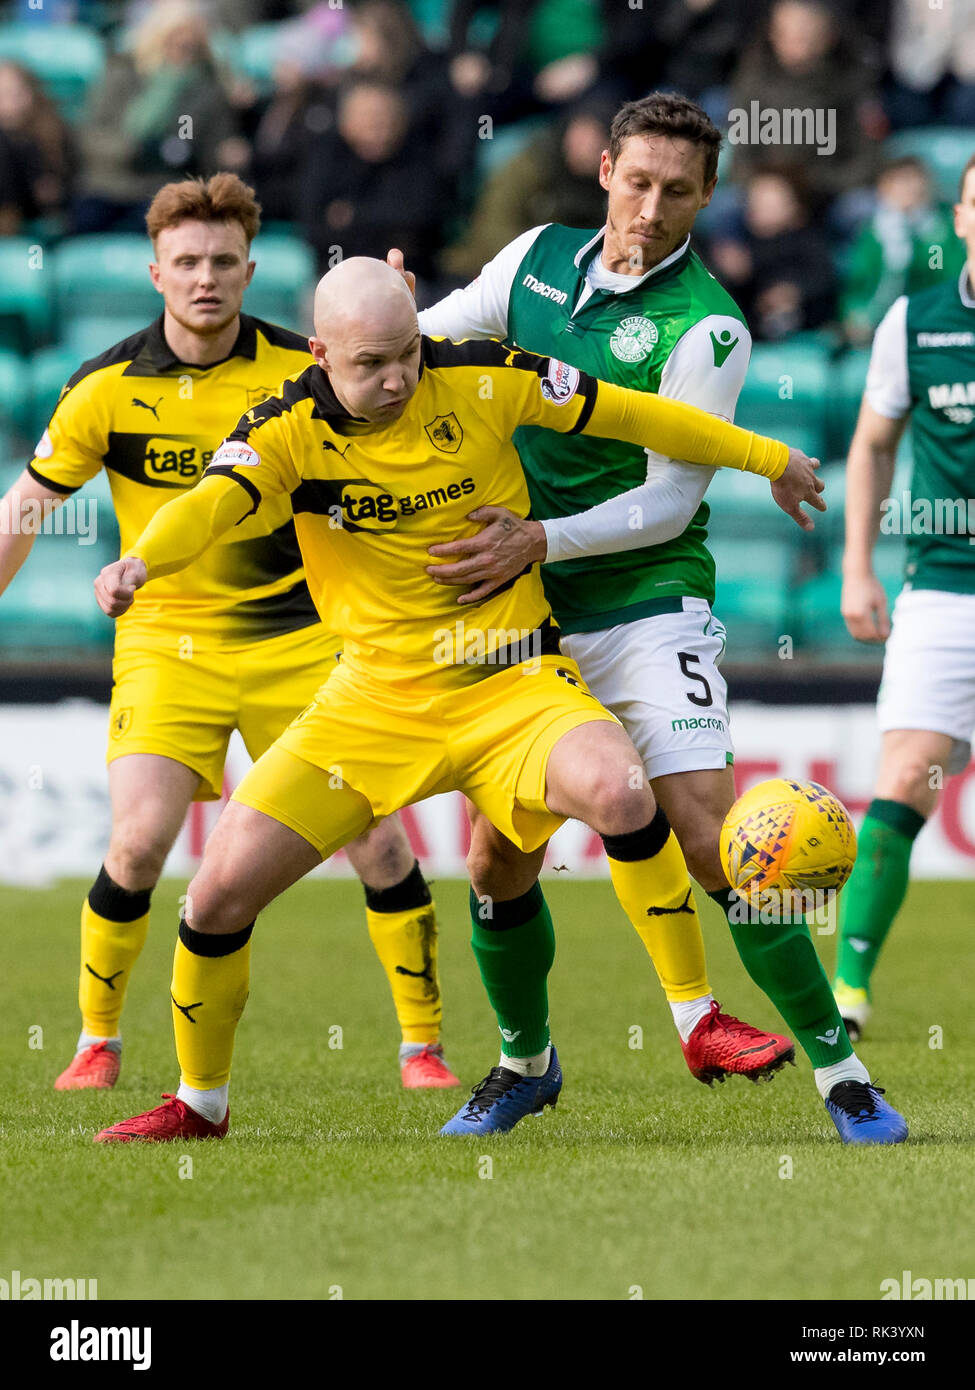 Easter Road, Edinburgh, UK. 9th Feb, 2019. Scottish Cup football fifth round, Hibernian versus Raith Rovers; Grant Gillespie of Raith Rovers and Mark Milligan of Hibernian compete for possession of the ball Credit: Action Plus Sports/Alamy Live News Stock Photo